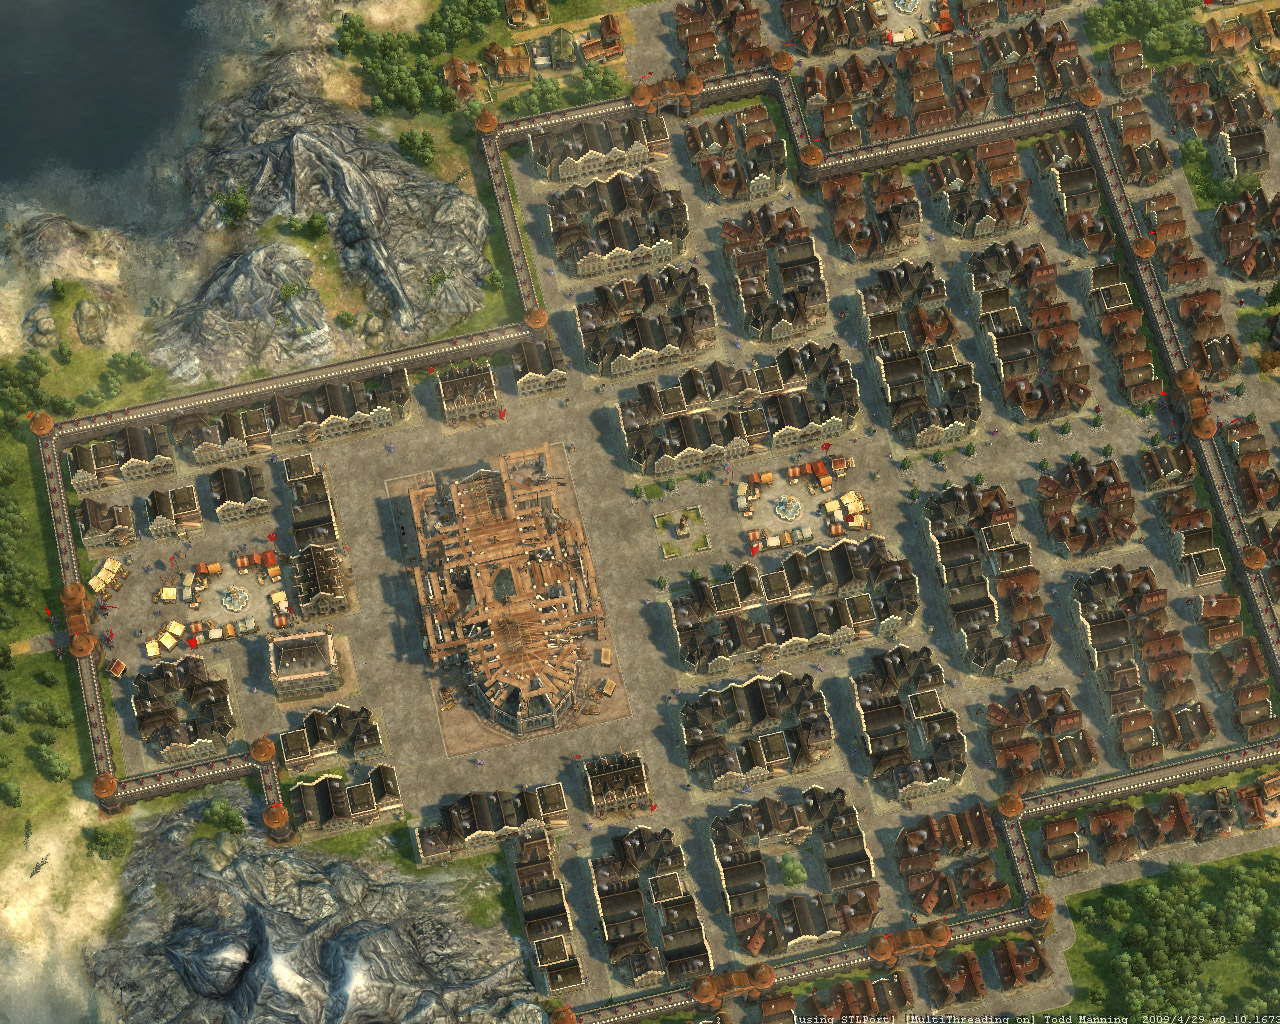 Anno 1404 demo download ab 18 uhr gumiabroncs Choice Image